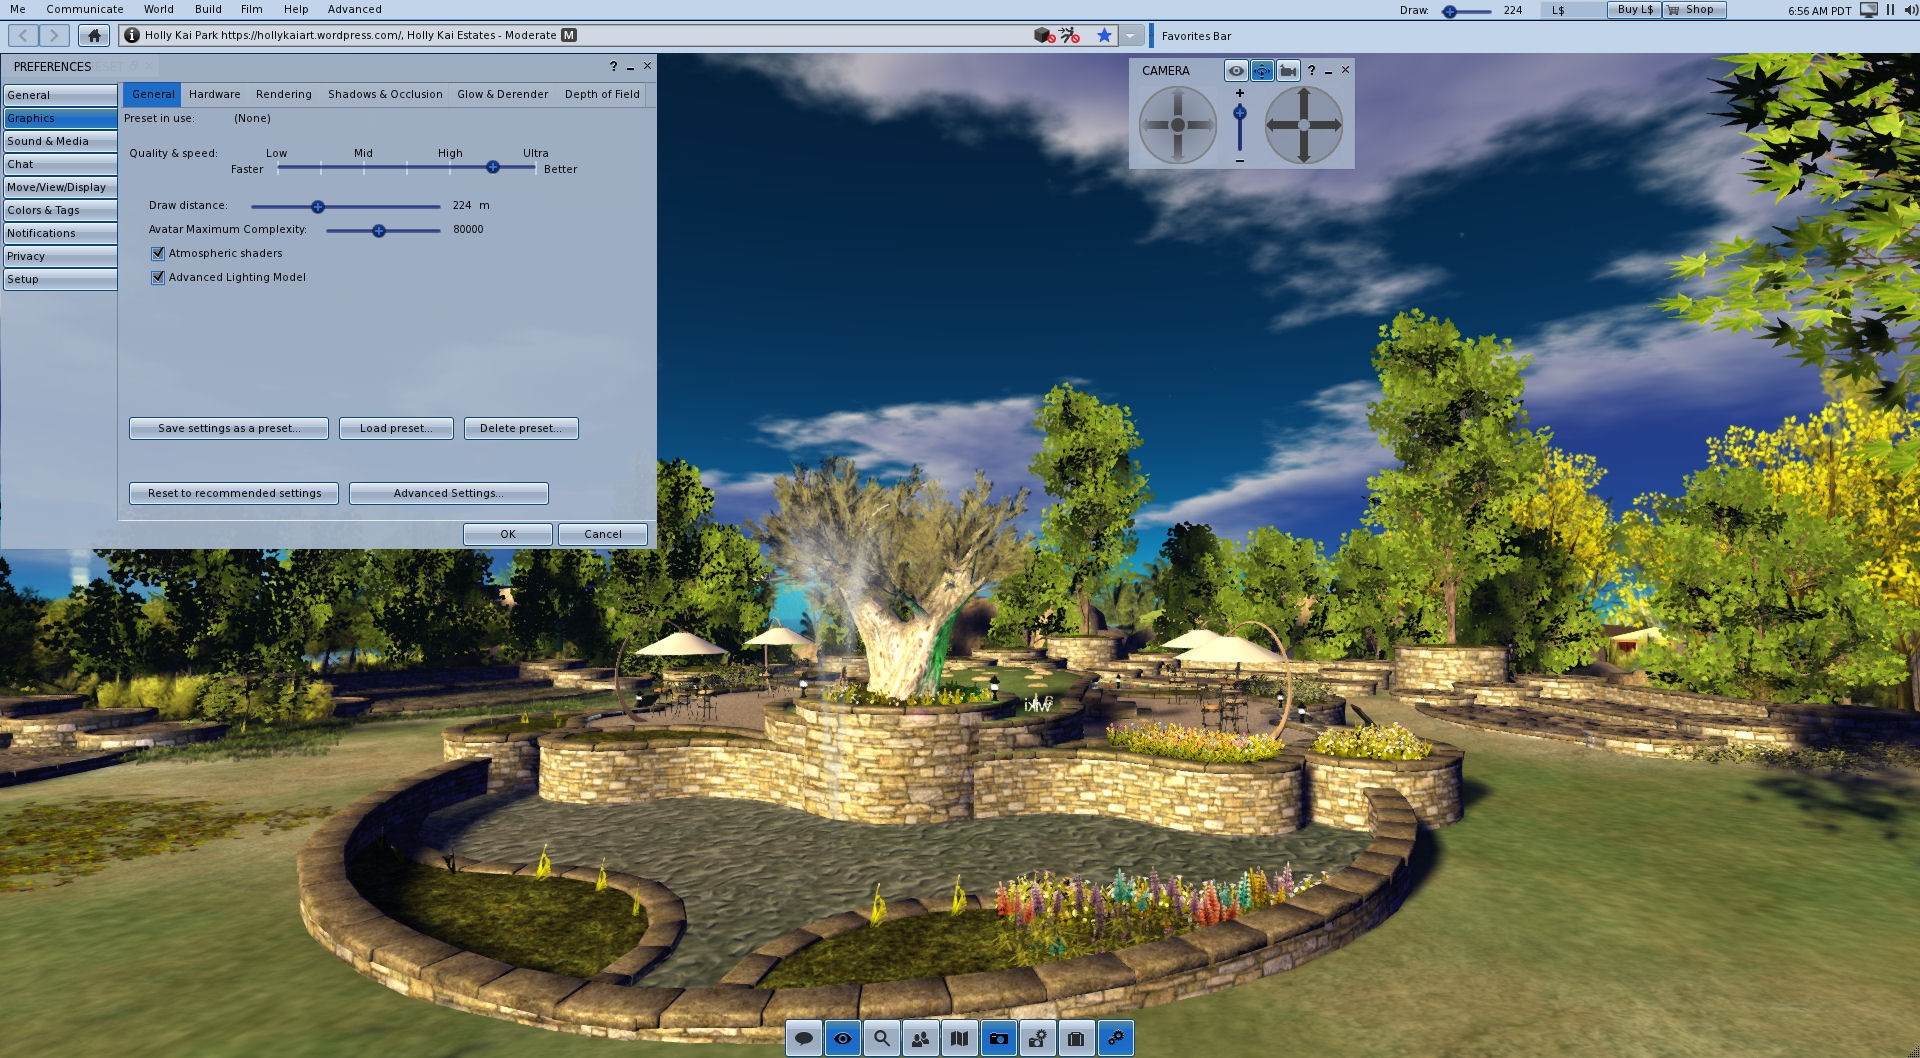 Second Life viewer: Starlight UI skins and options – Inara